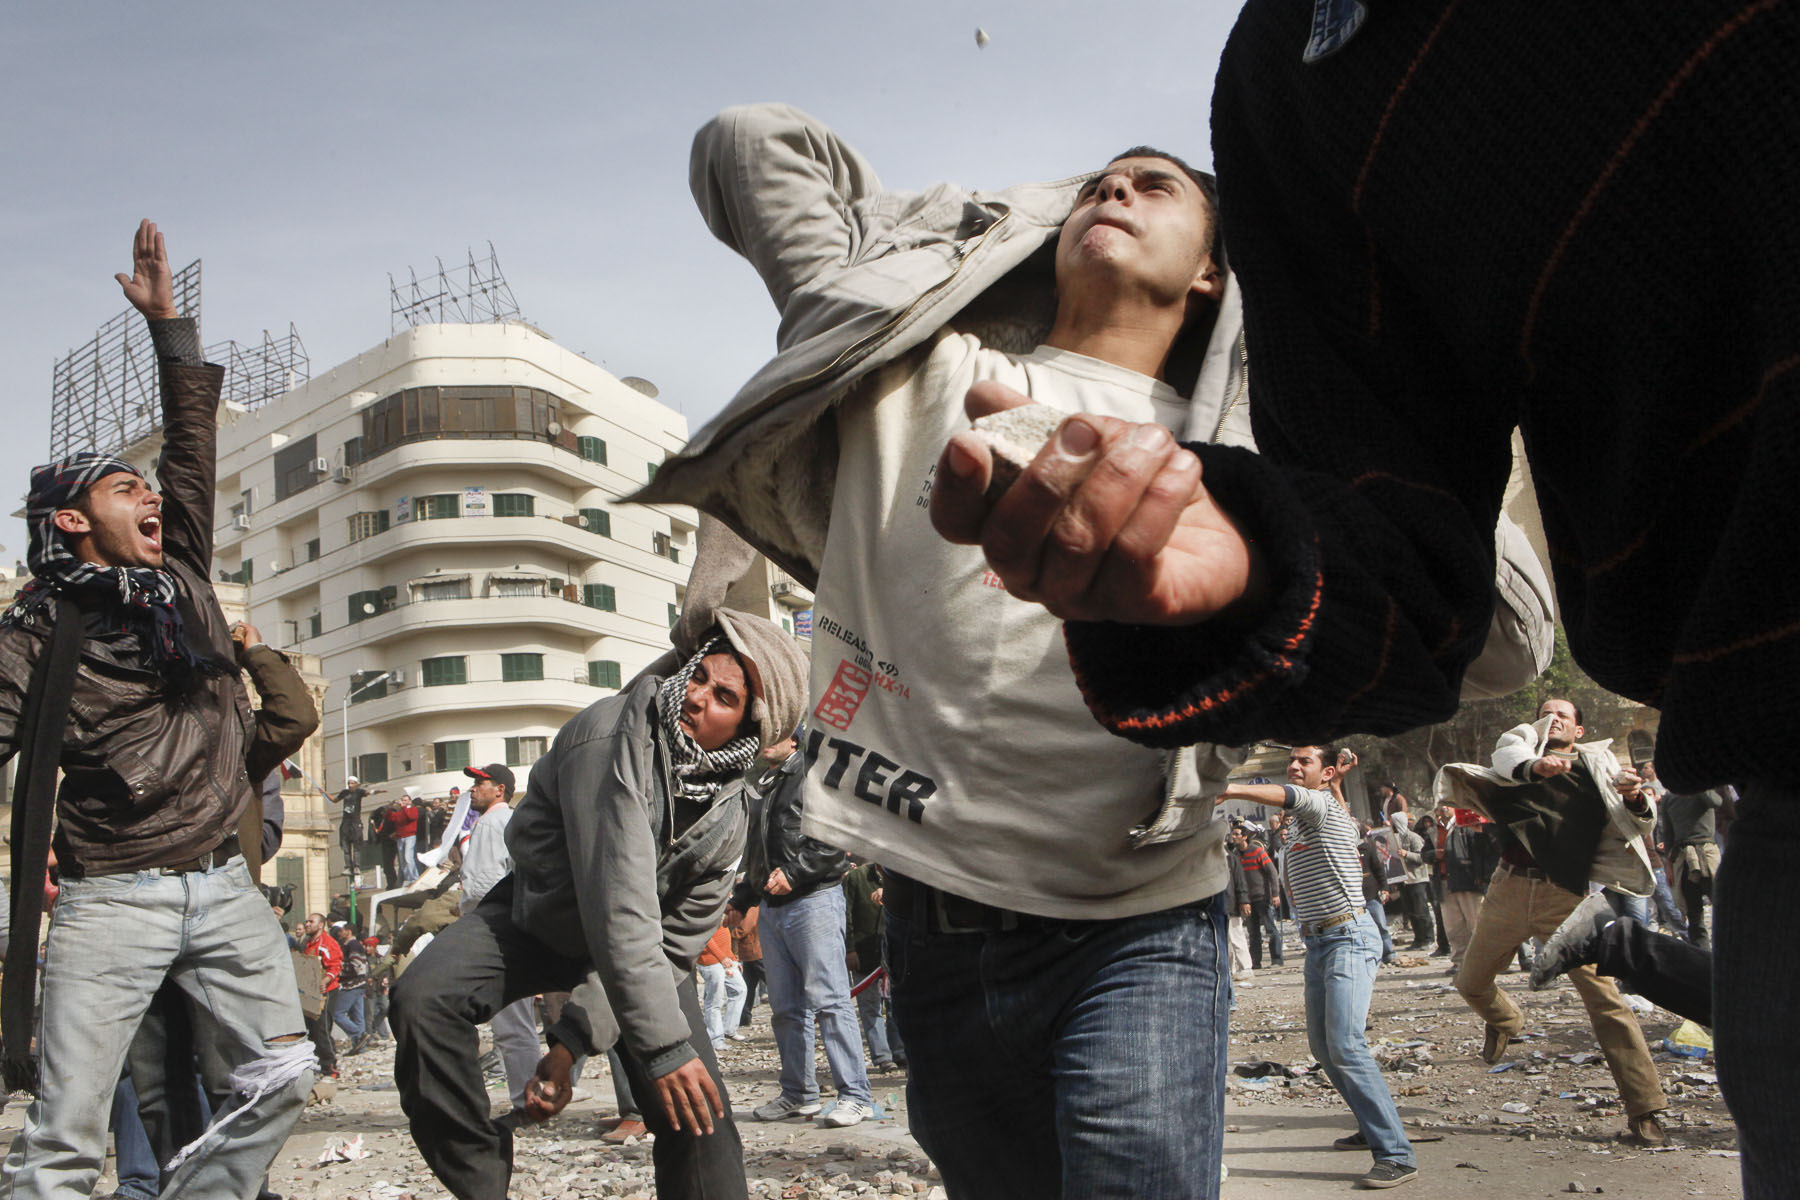 Anti-government demonstrators throw stones during a clash with President Mubarak's supporters on Tahrir Square on Thursday February 3 2011